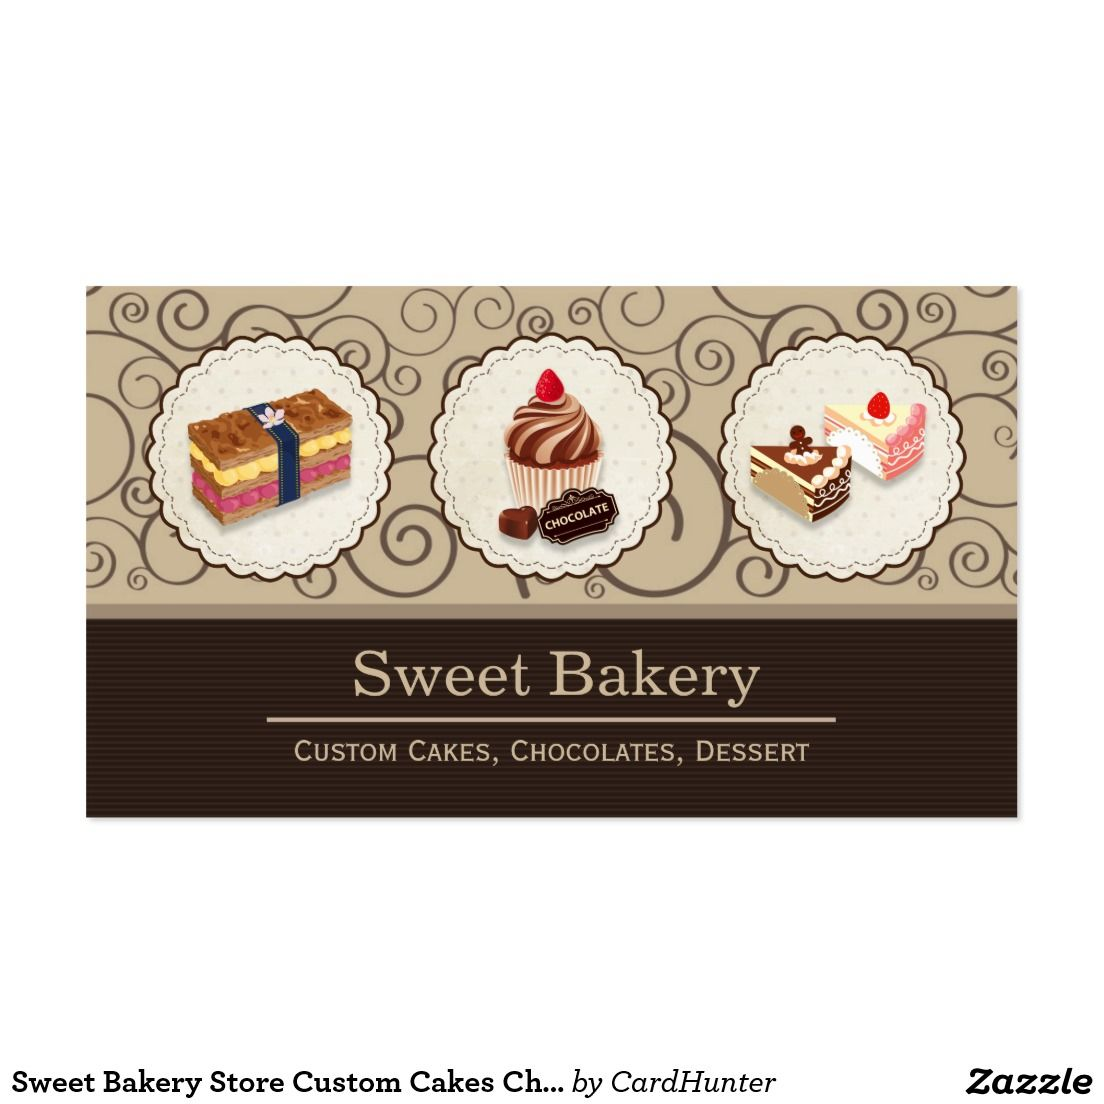 Sweet Bakery Store Custom Cakes Chocolates Dessert Business Card ...